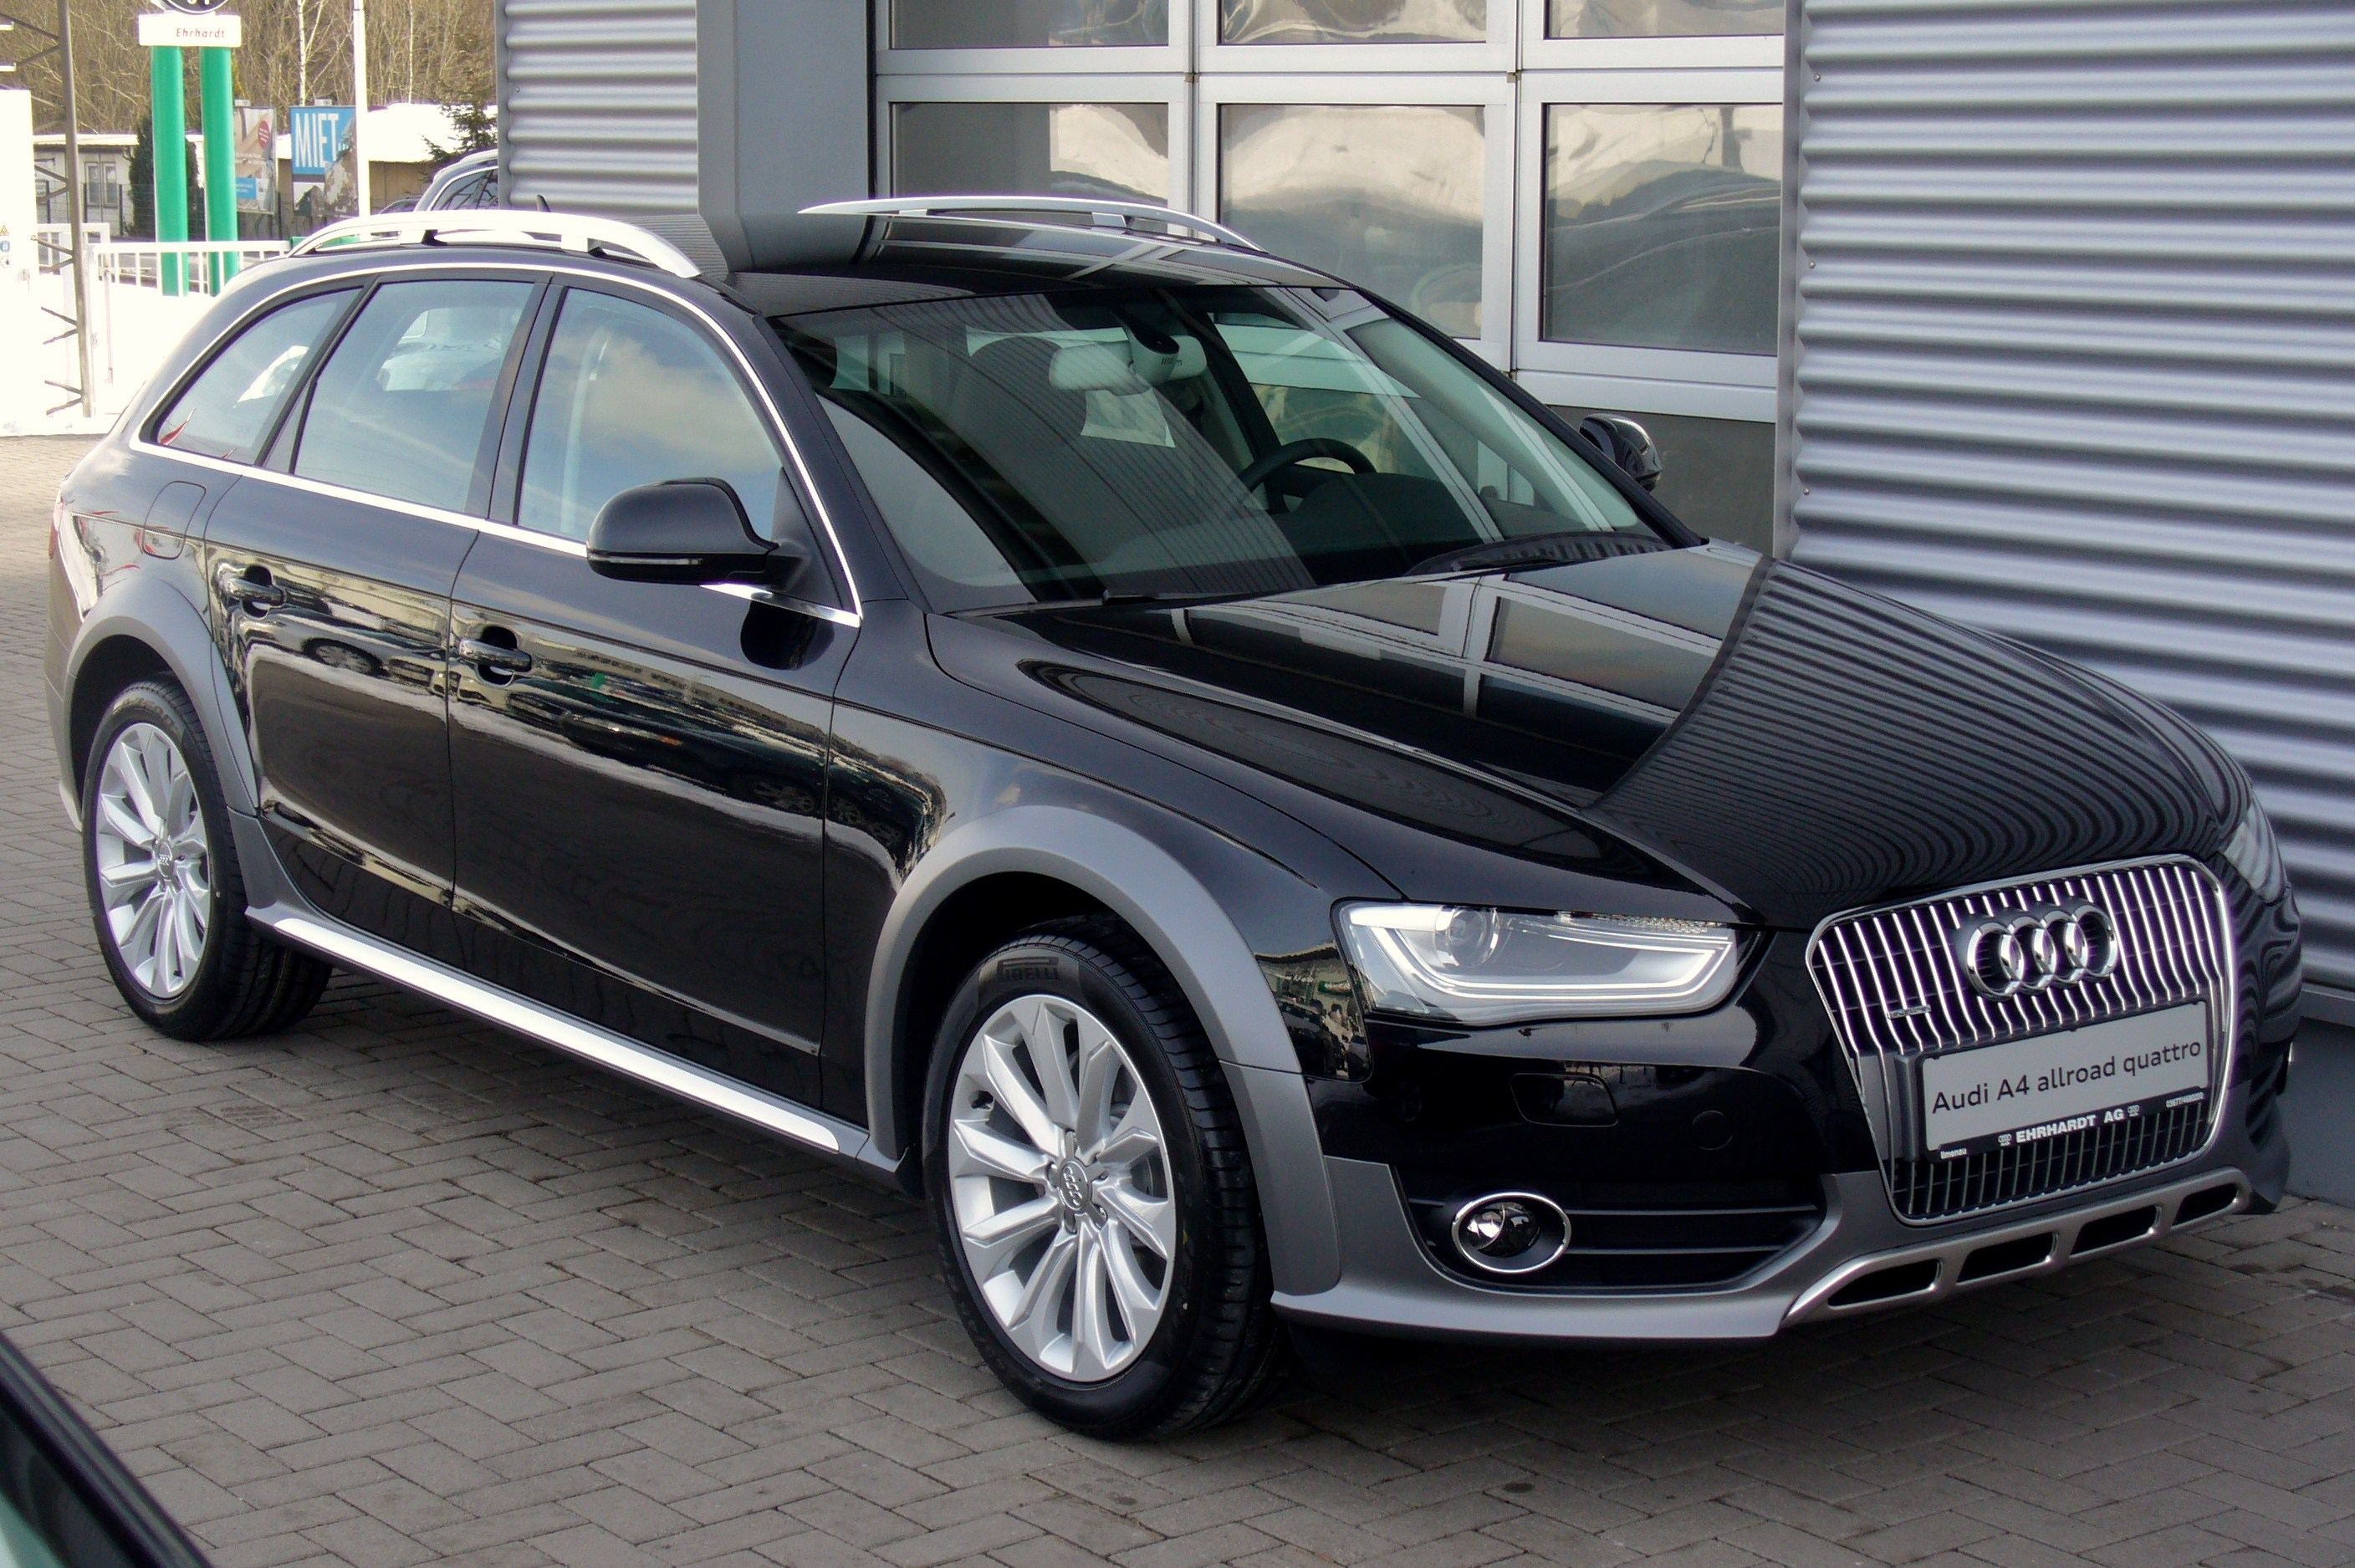 audi a4 allroad quattro wikiwand. Black Bedroom Furniture Sets. Home Design Ideas